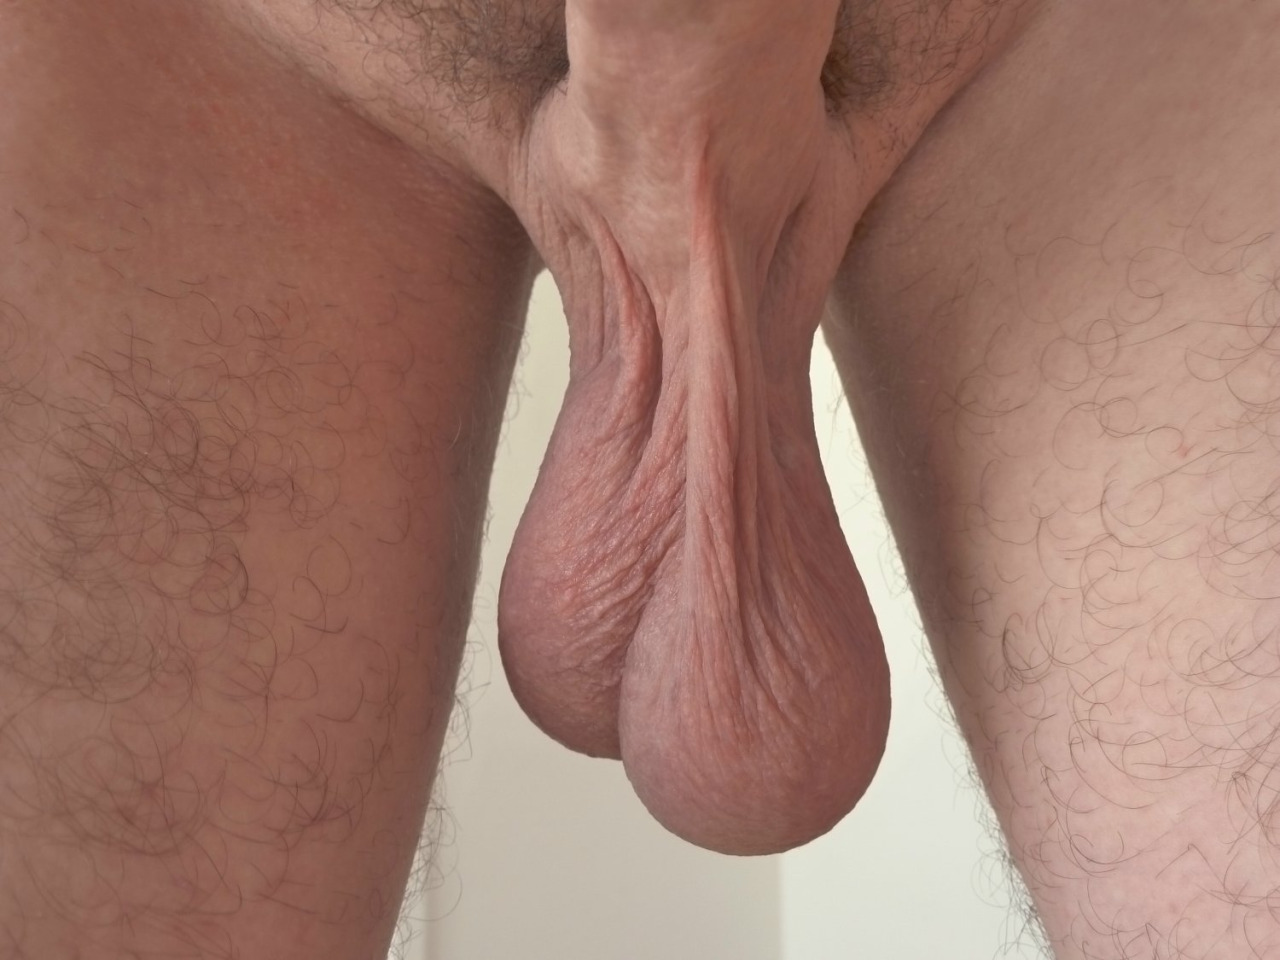 Pics of cocks and big balls